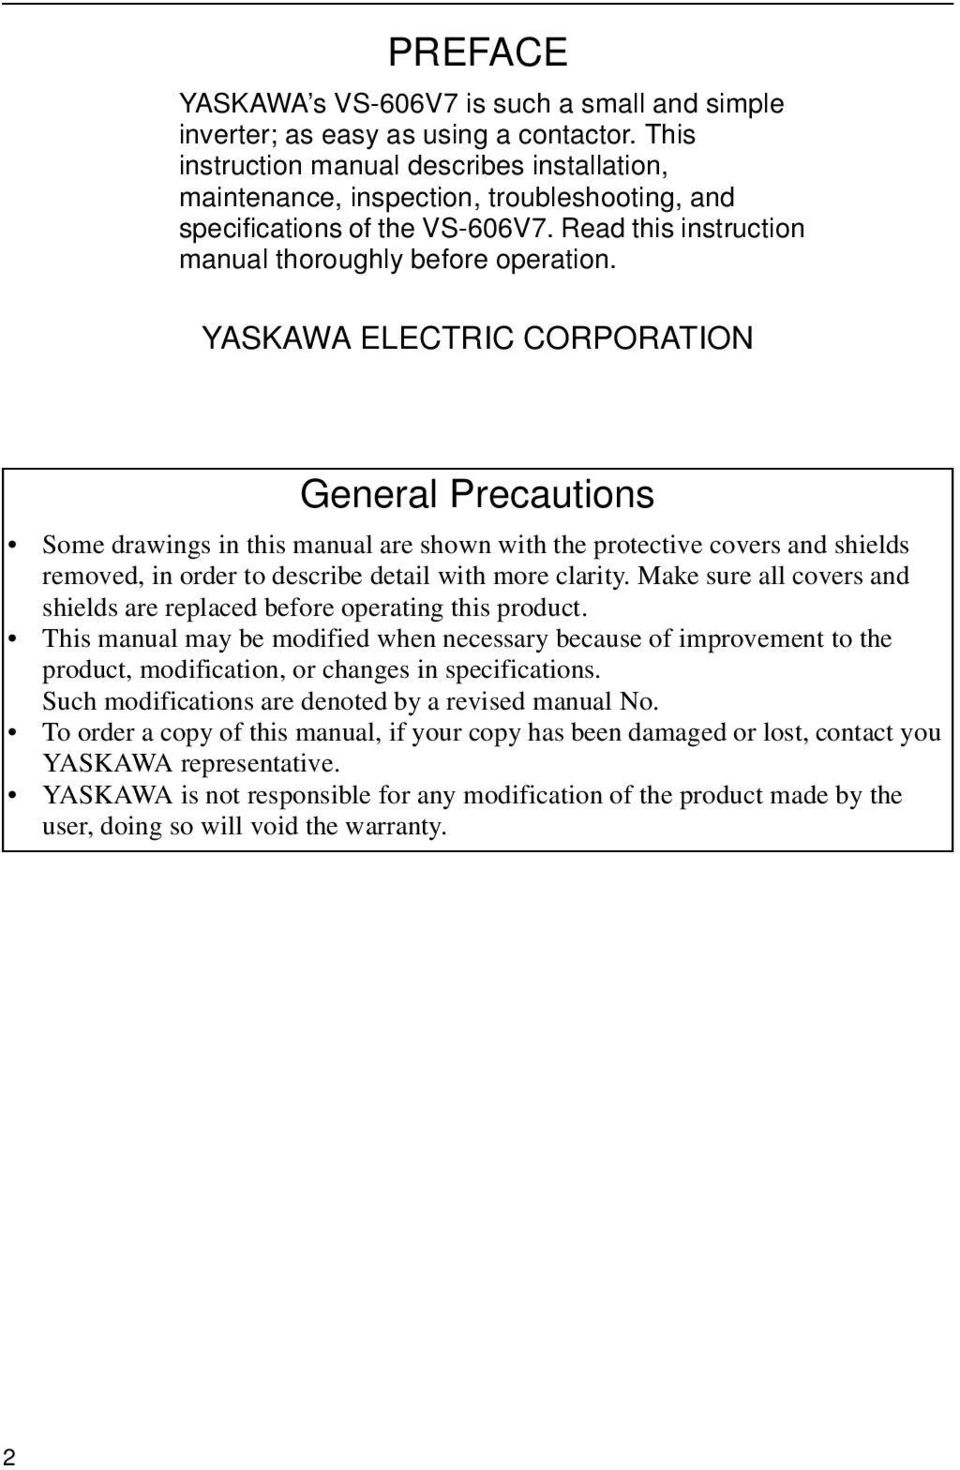 Vs 606v7 Series Instruction Manual Compact General Purpose Inverter Yaskawa Vfd Wiring Diagrams Electric Corporation Precautions Some Drawings In This Are Shown With The Protective Covers